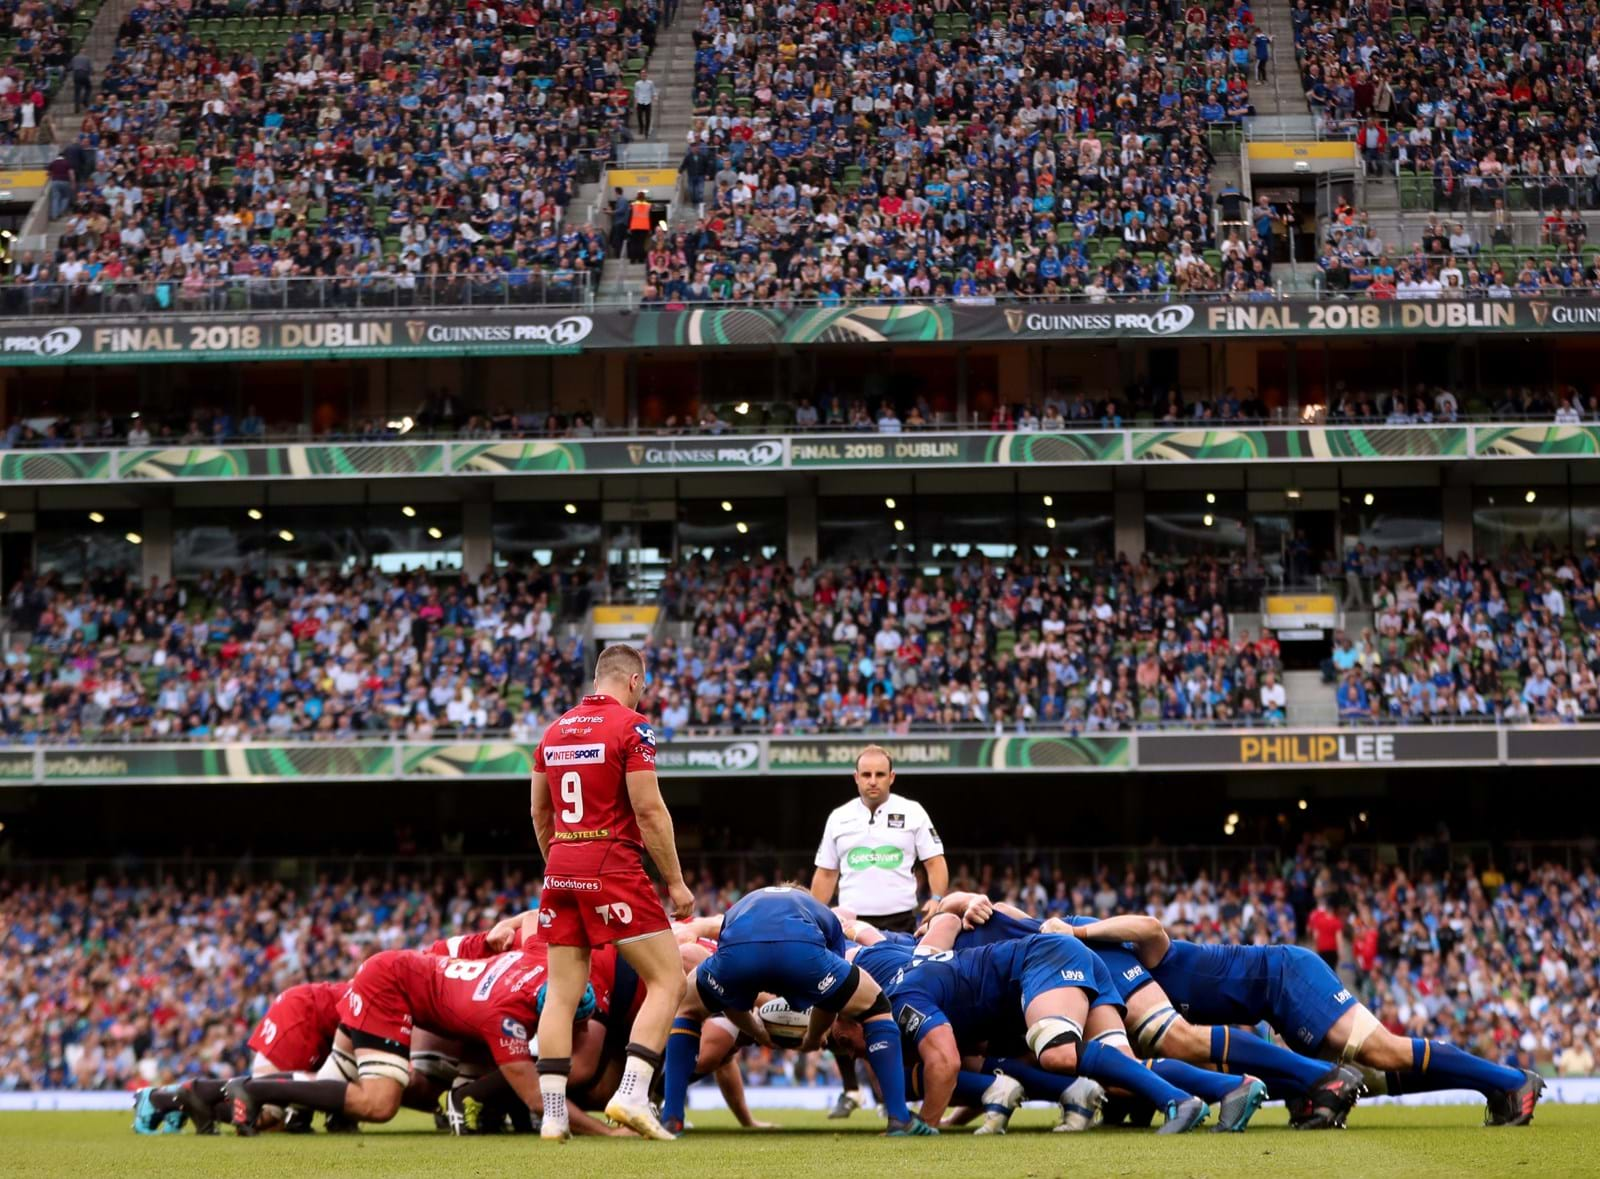 PREMIER SPORTS APPOINTS SUNSET+VINE TO PRODUCE GUINNESS PRO14 COVERAGE